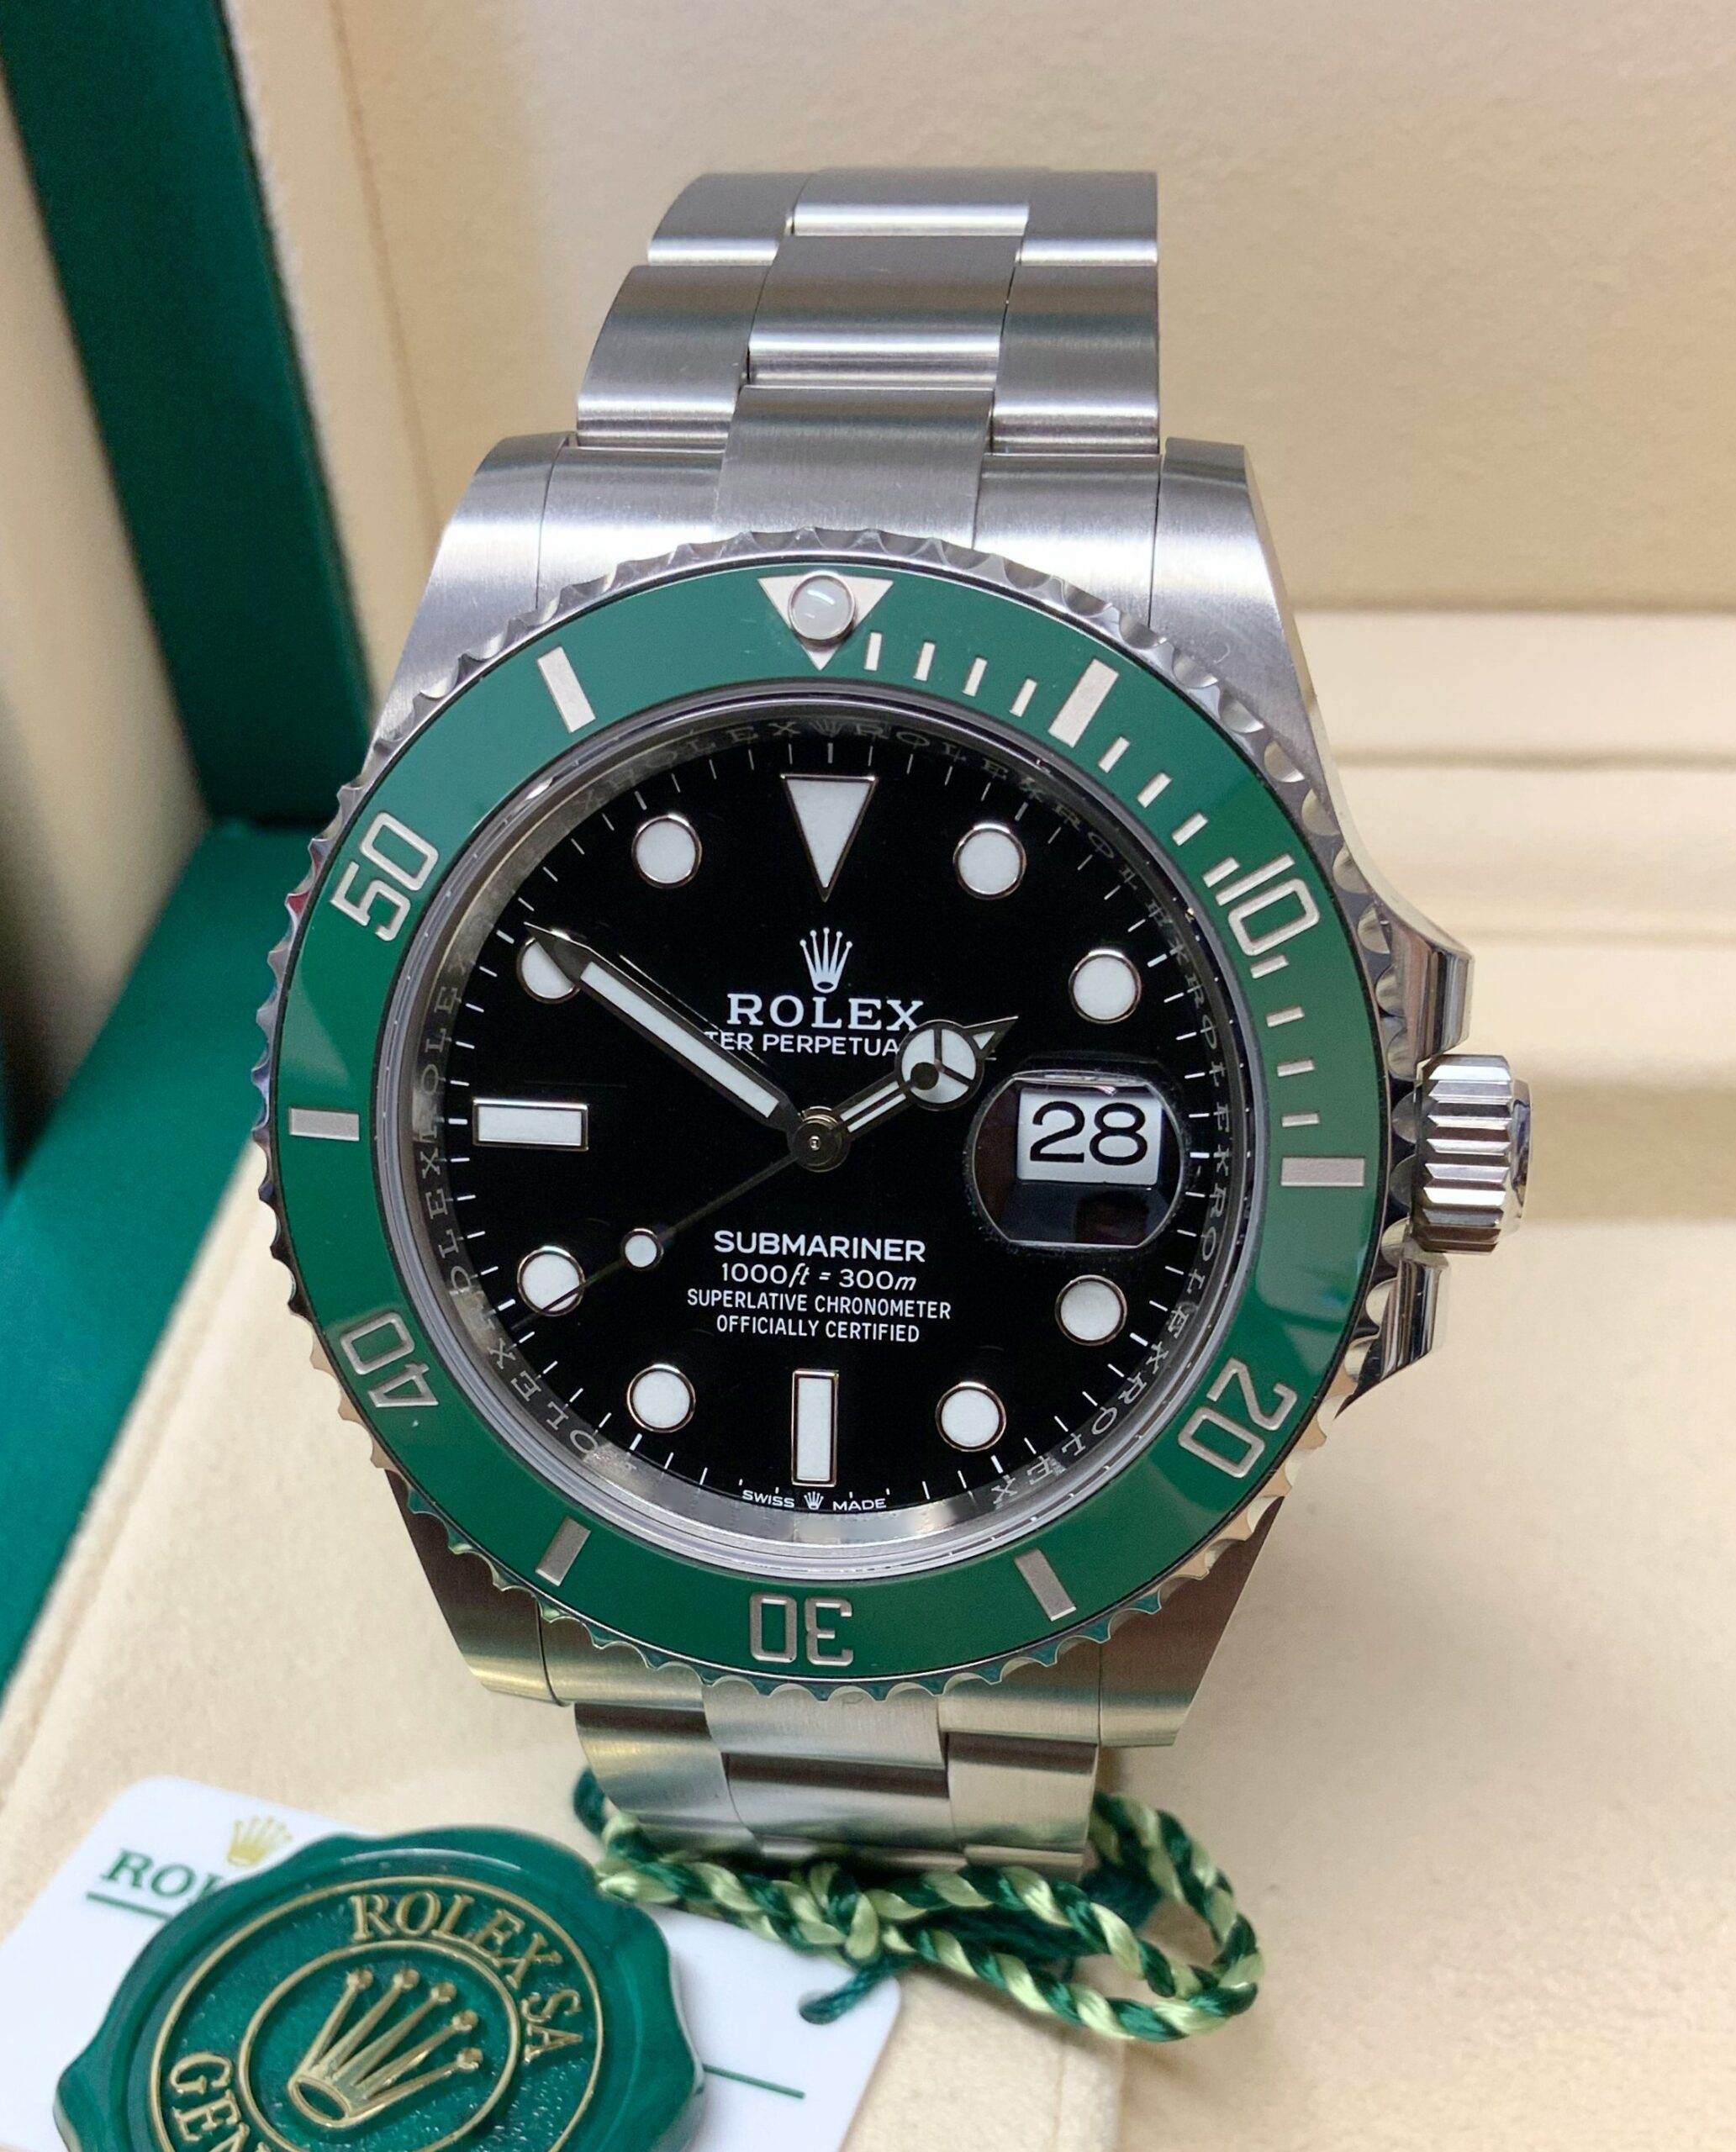 Rolex replica submariner hulk date 126610LV orologio replica 41mm my2020